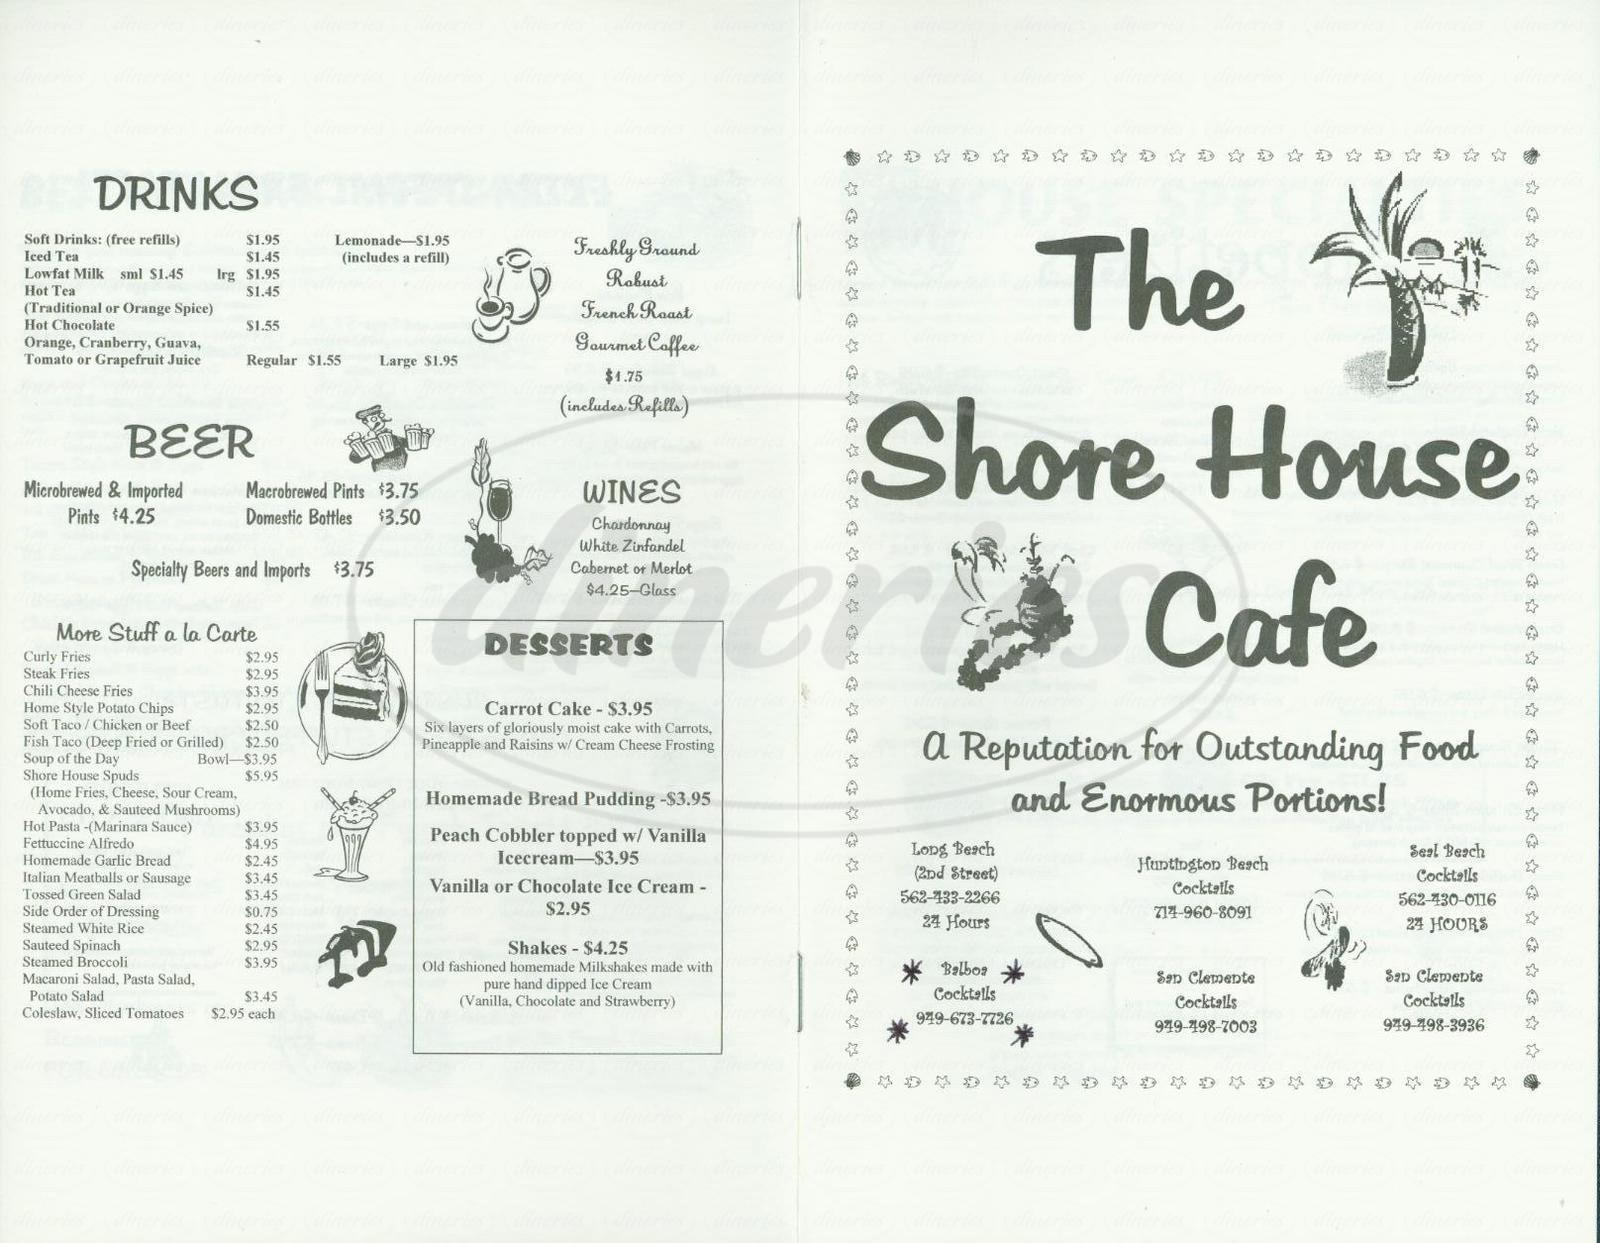 menu for Shore House Café